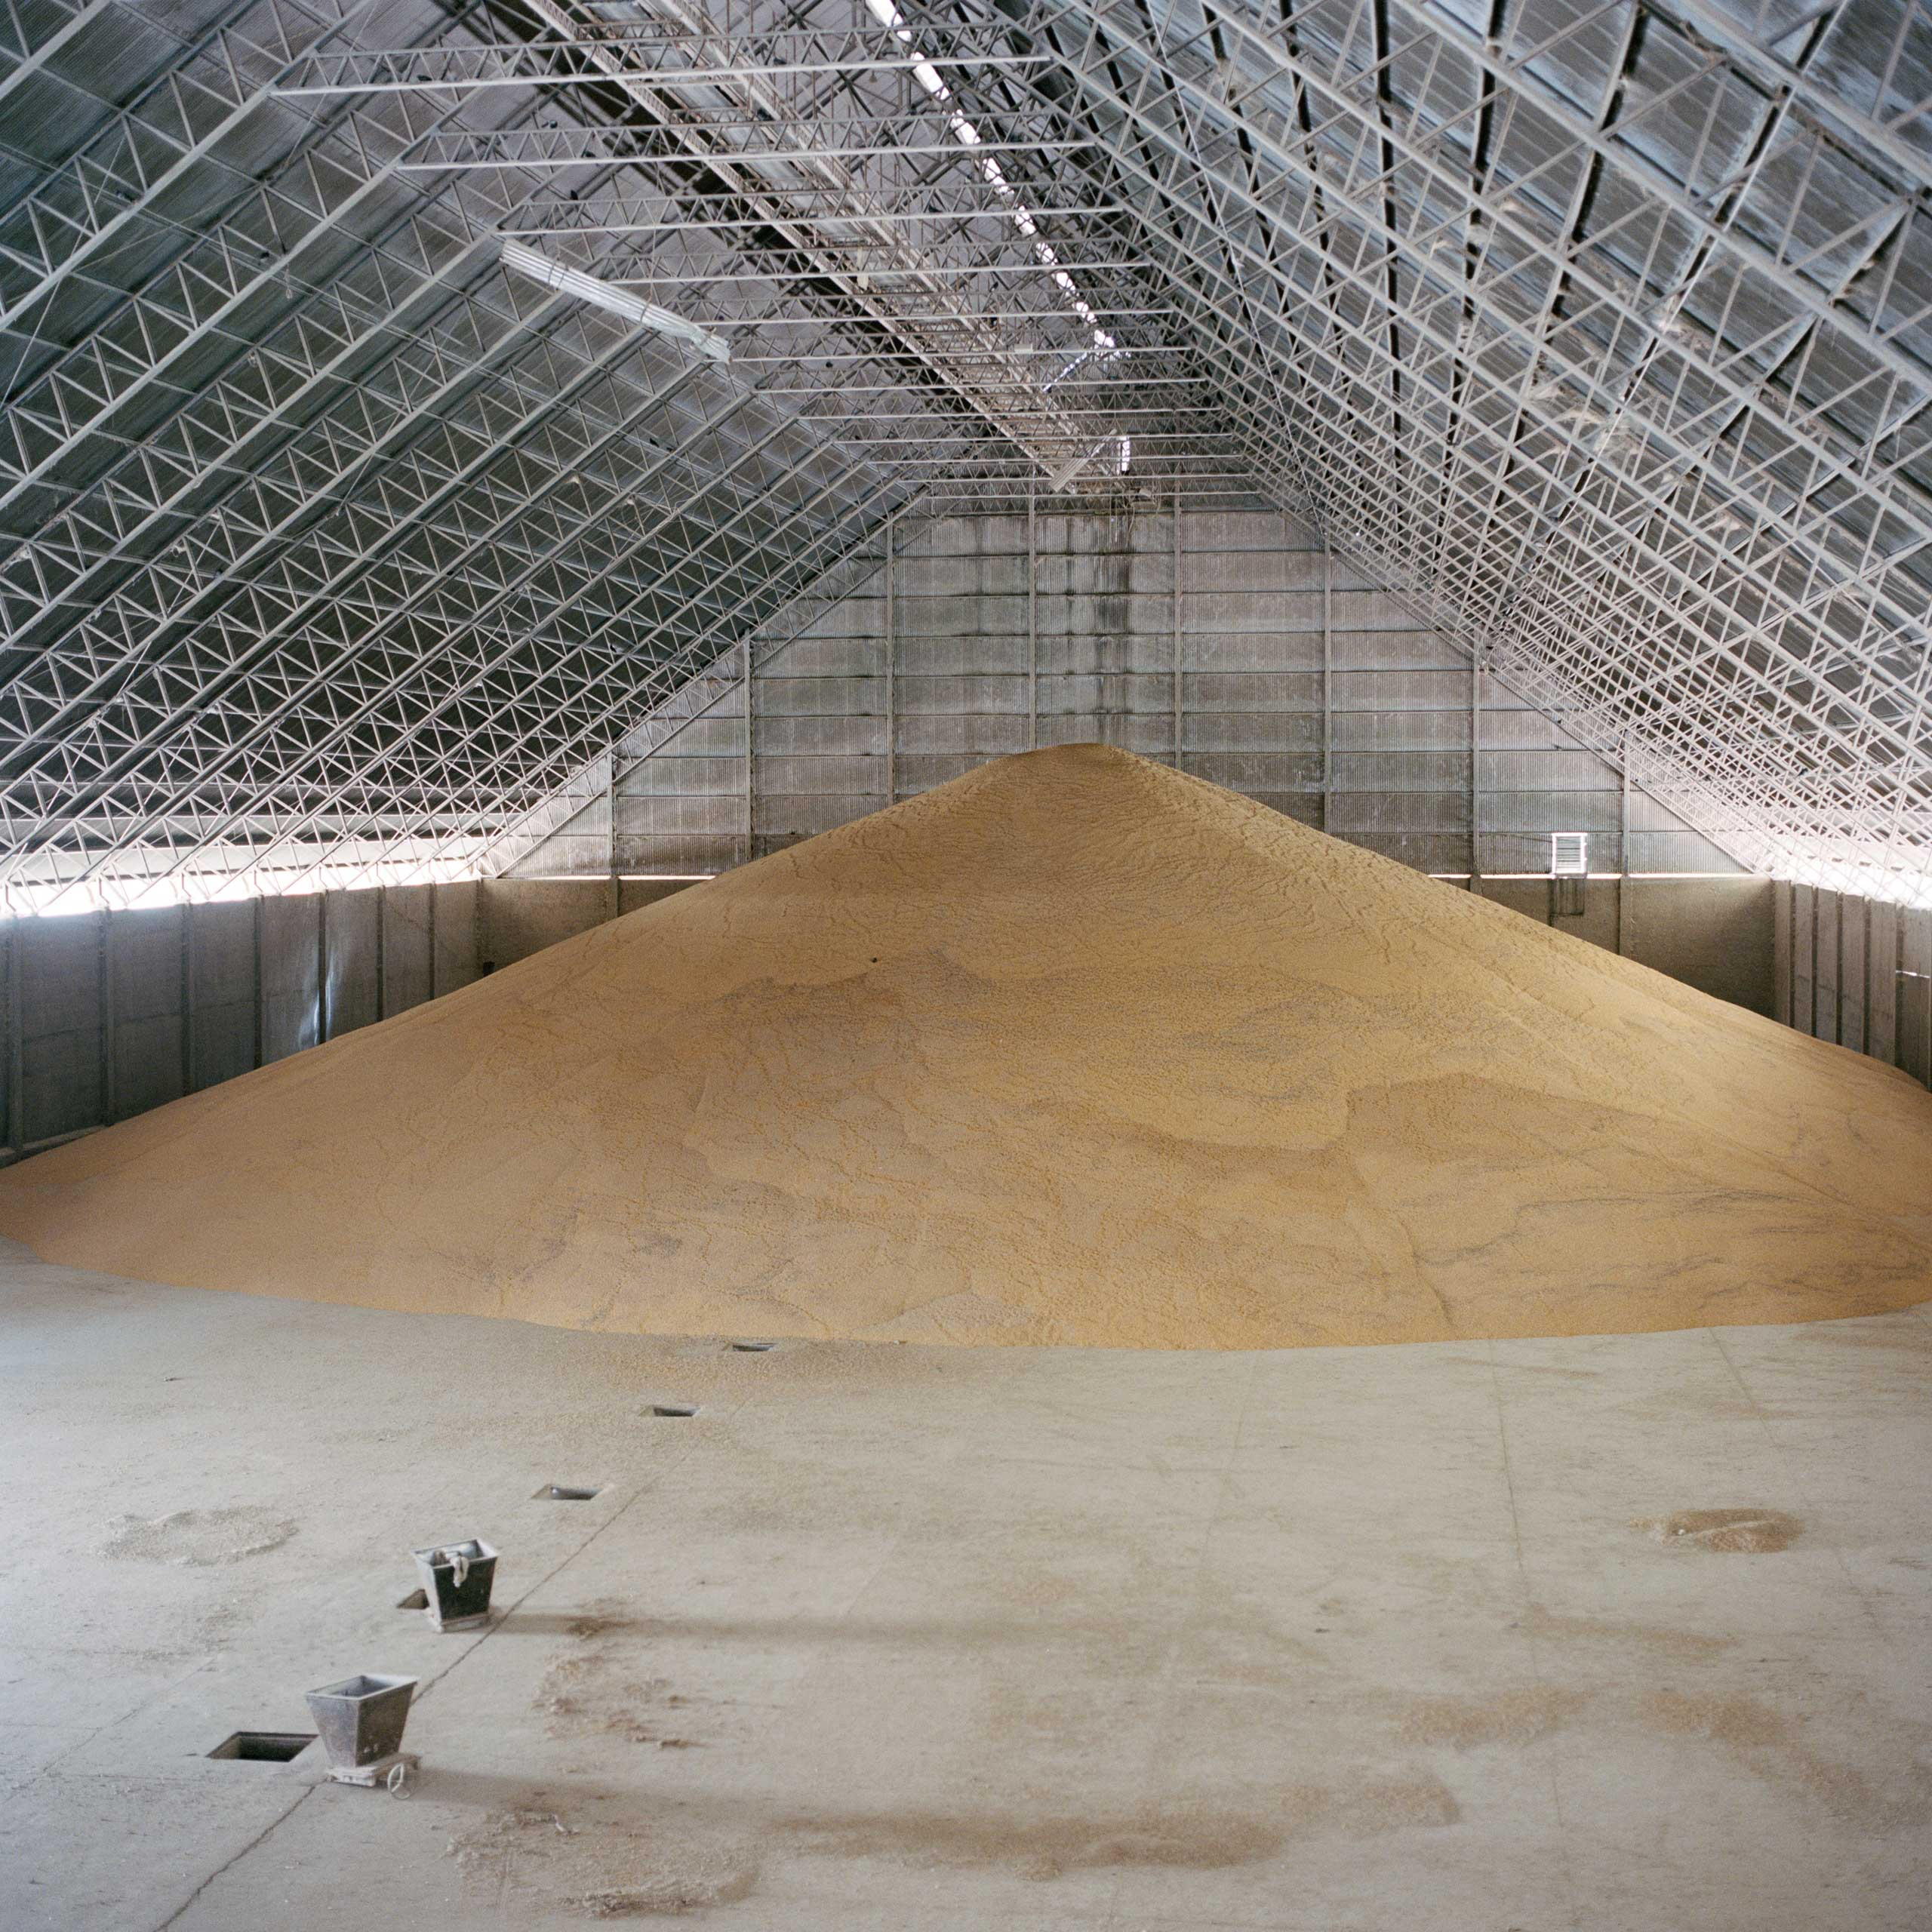 A silo full of corn at Puerto Gical, one of the main private ports on the Paraguay River. Thanks to soy, cereals and meat exports,  Paraguay is one of the fastest growing economies in Latin America, reaching a 13% GDP growth in 2013, one of the world's biggest.